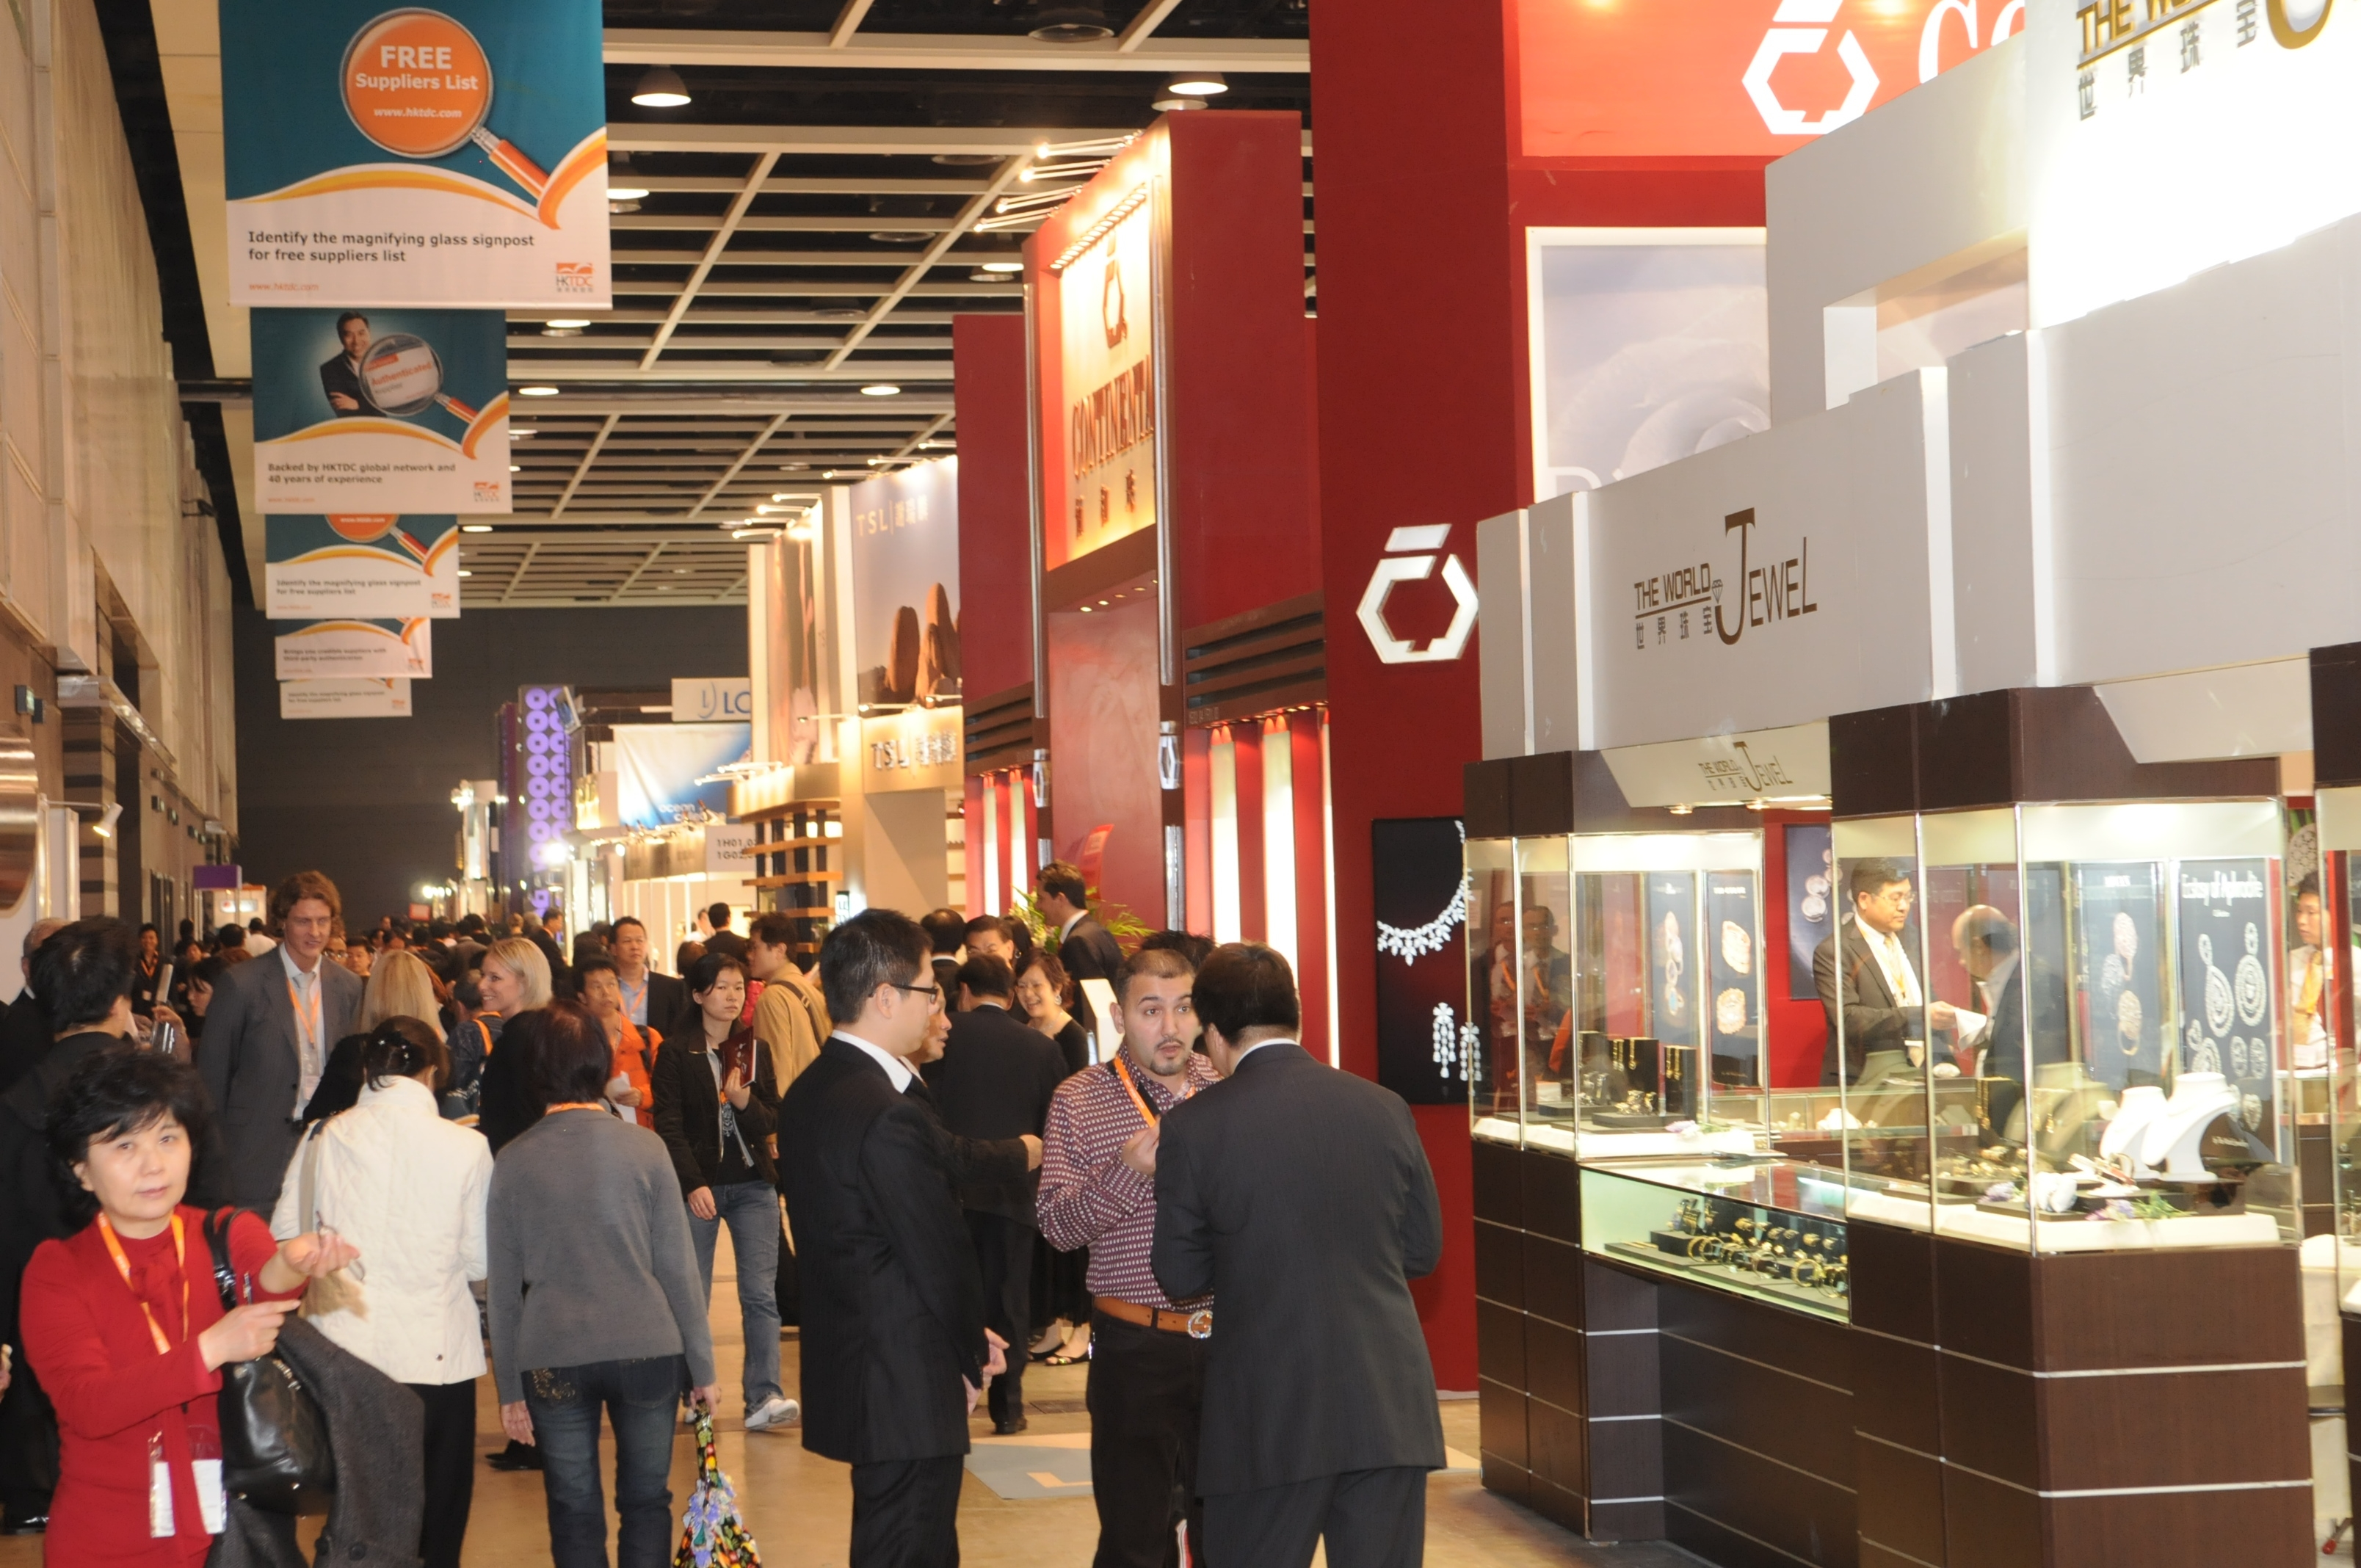 hong kong jewellery market The hong kong international jewellery show is the second of two venues that gia will exhibit in, and is open to the gem and jewelry trade and public (see more about the hong kong diamond, gem & pearl show venue).